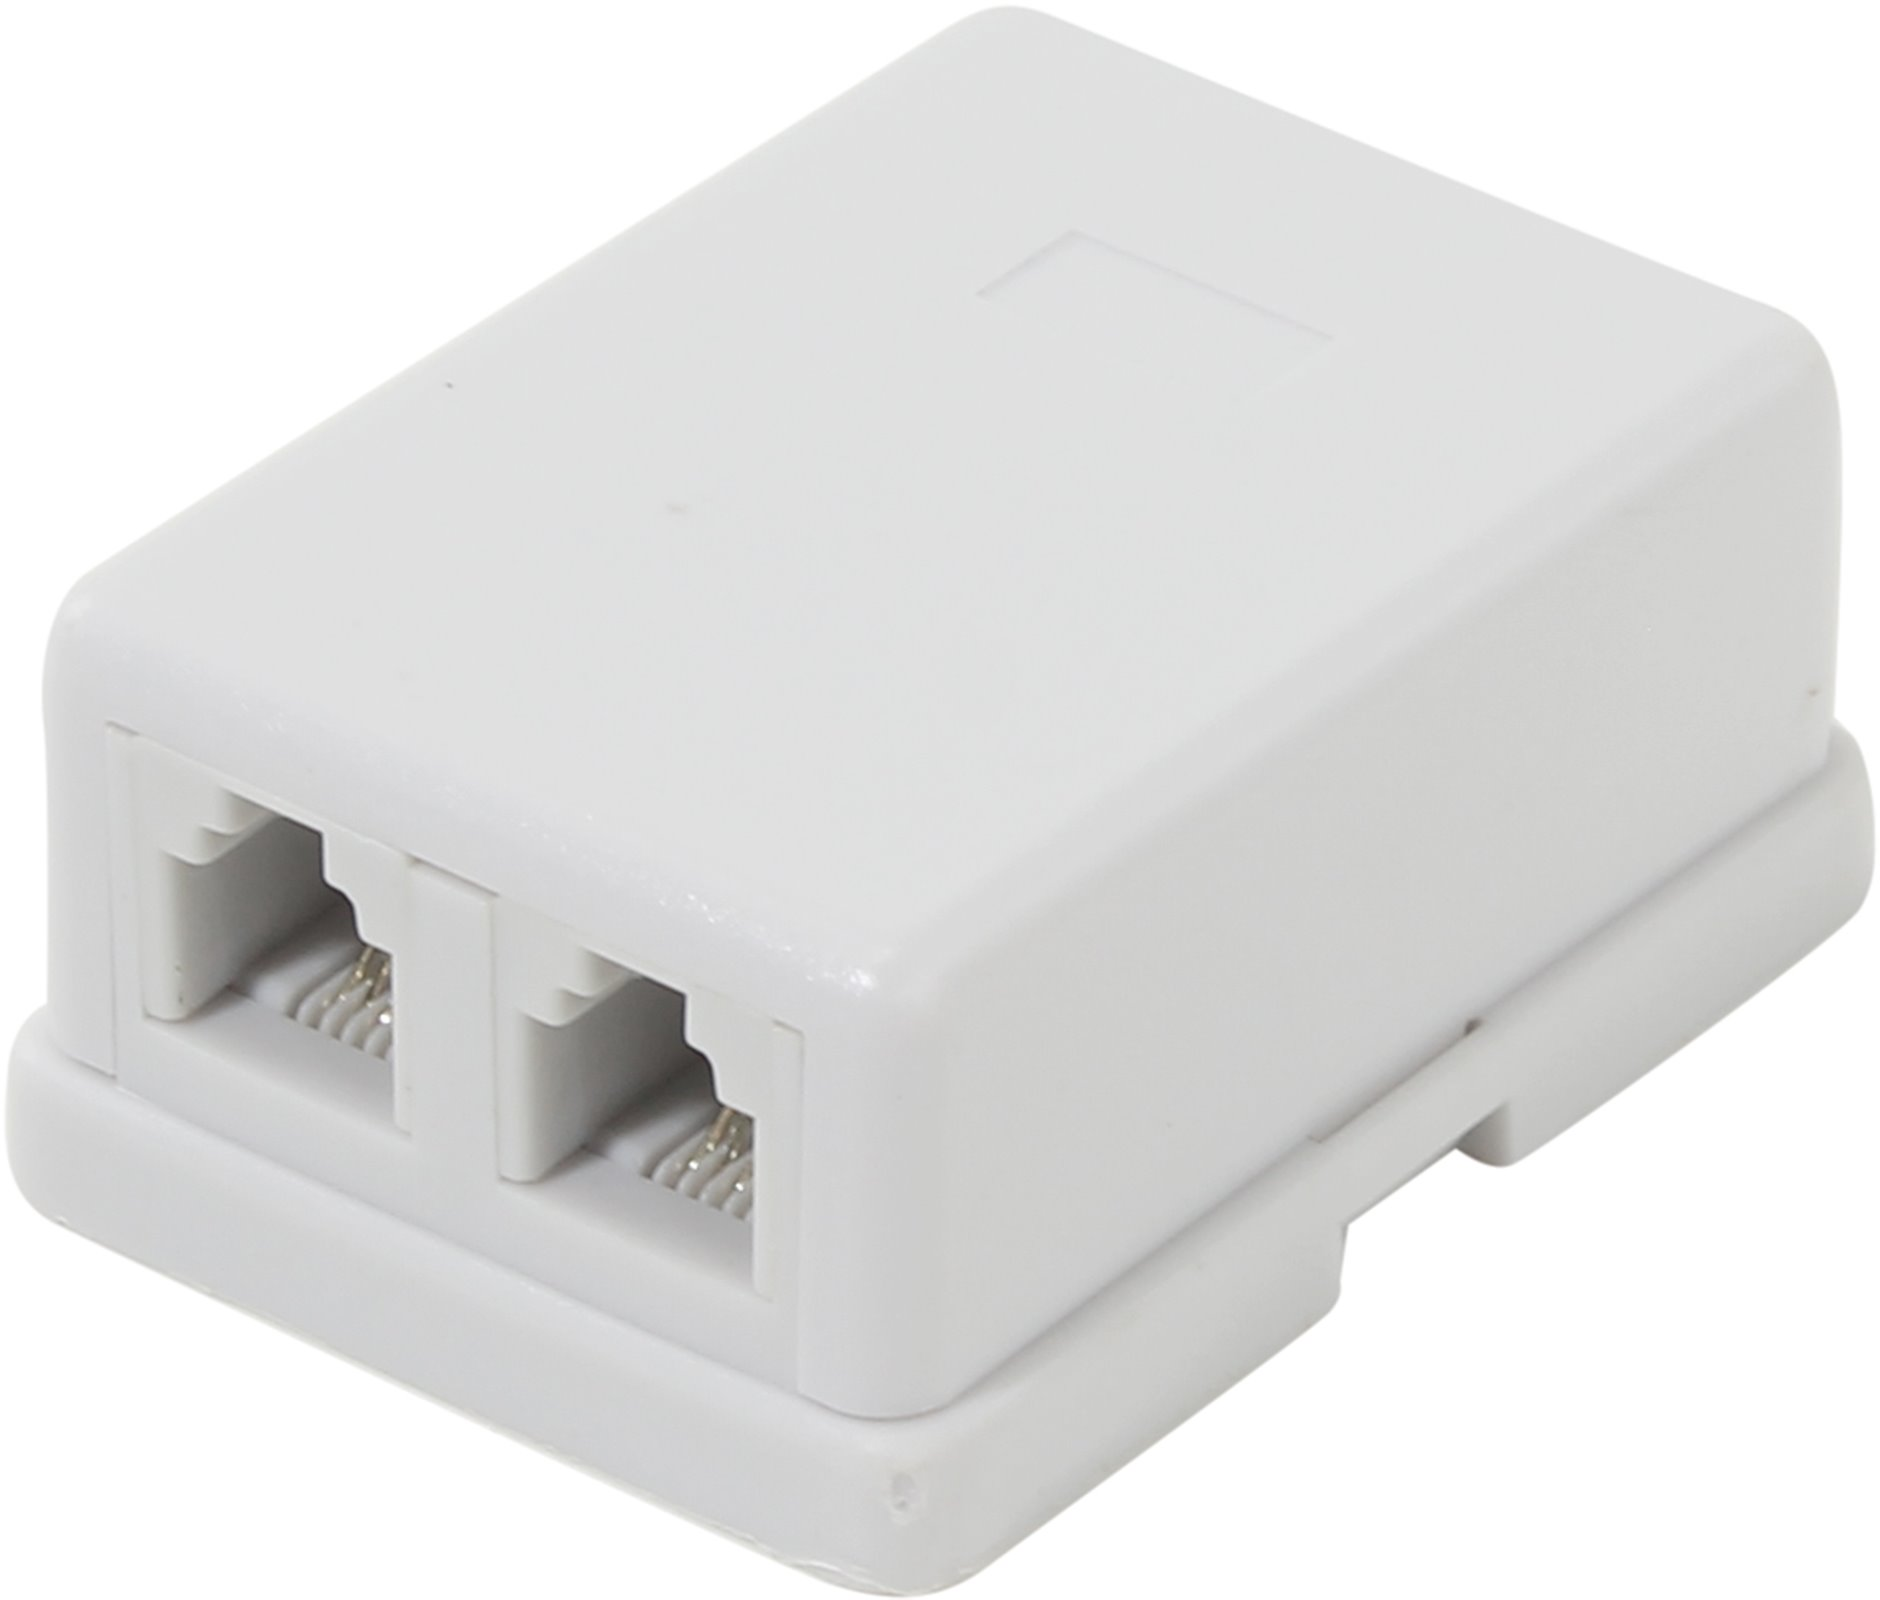 Phone Plug How To Connect Connecting The Telephone Socket Rj25 Jack Wiring Also There Are Rosettes Rj 12 But They Not Standard So Designate Legrand Products Rj11 Or 25 Devices Such As Tae Used